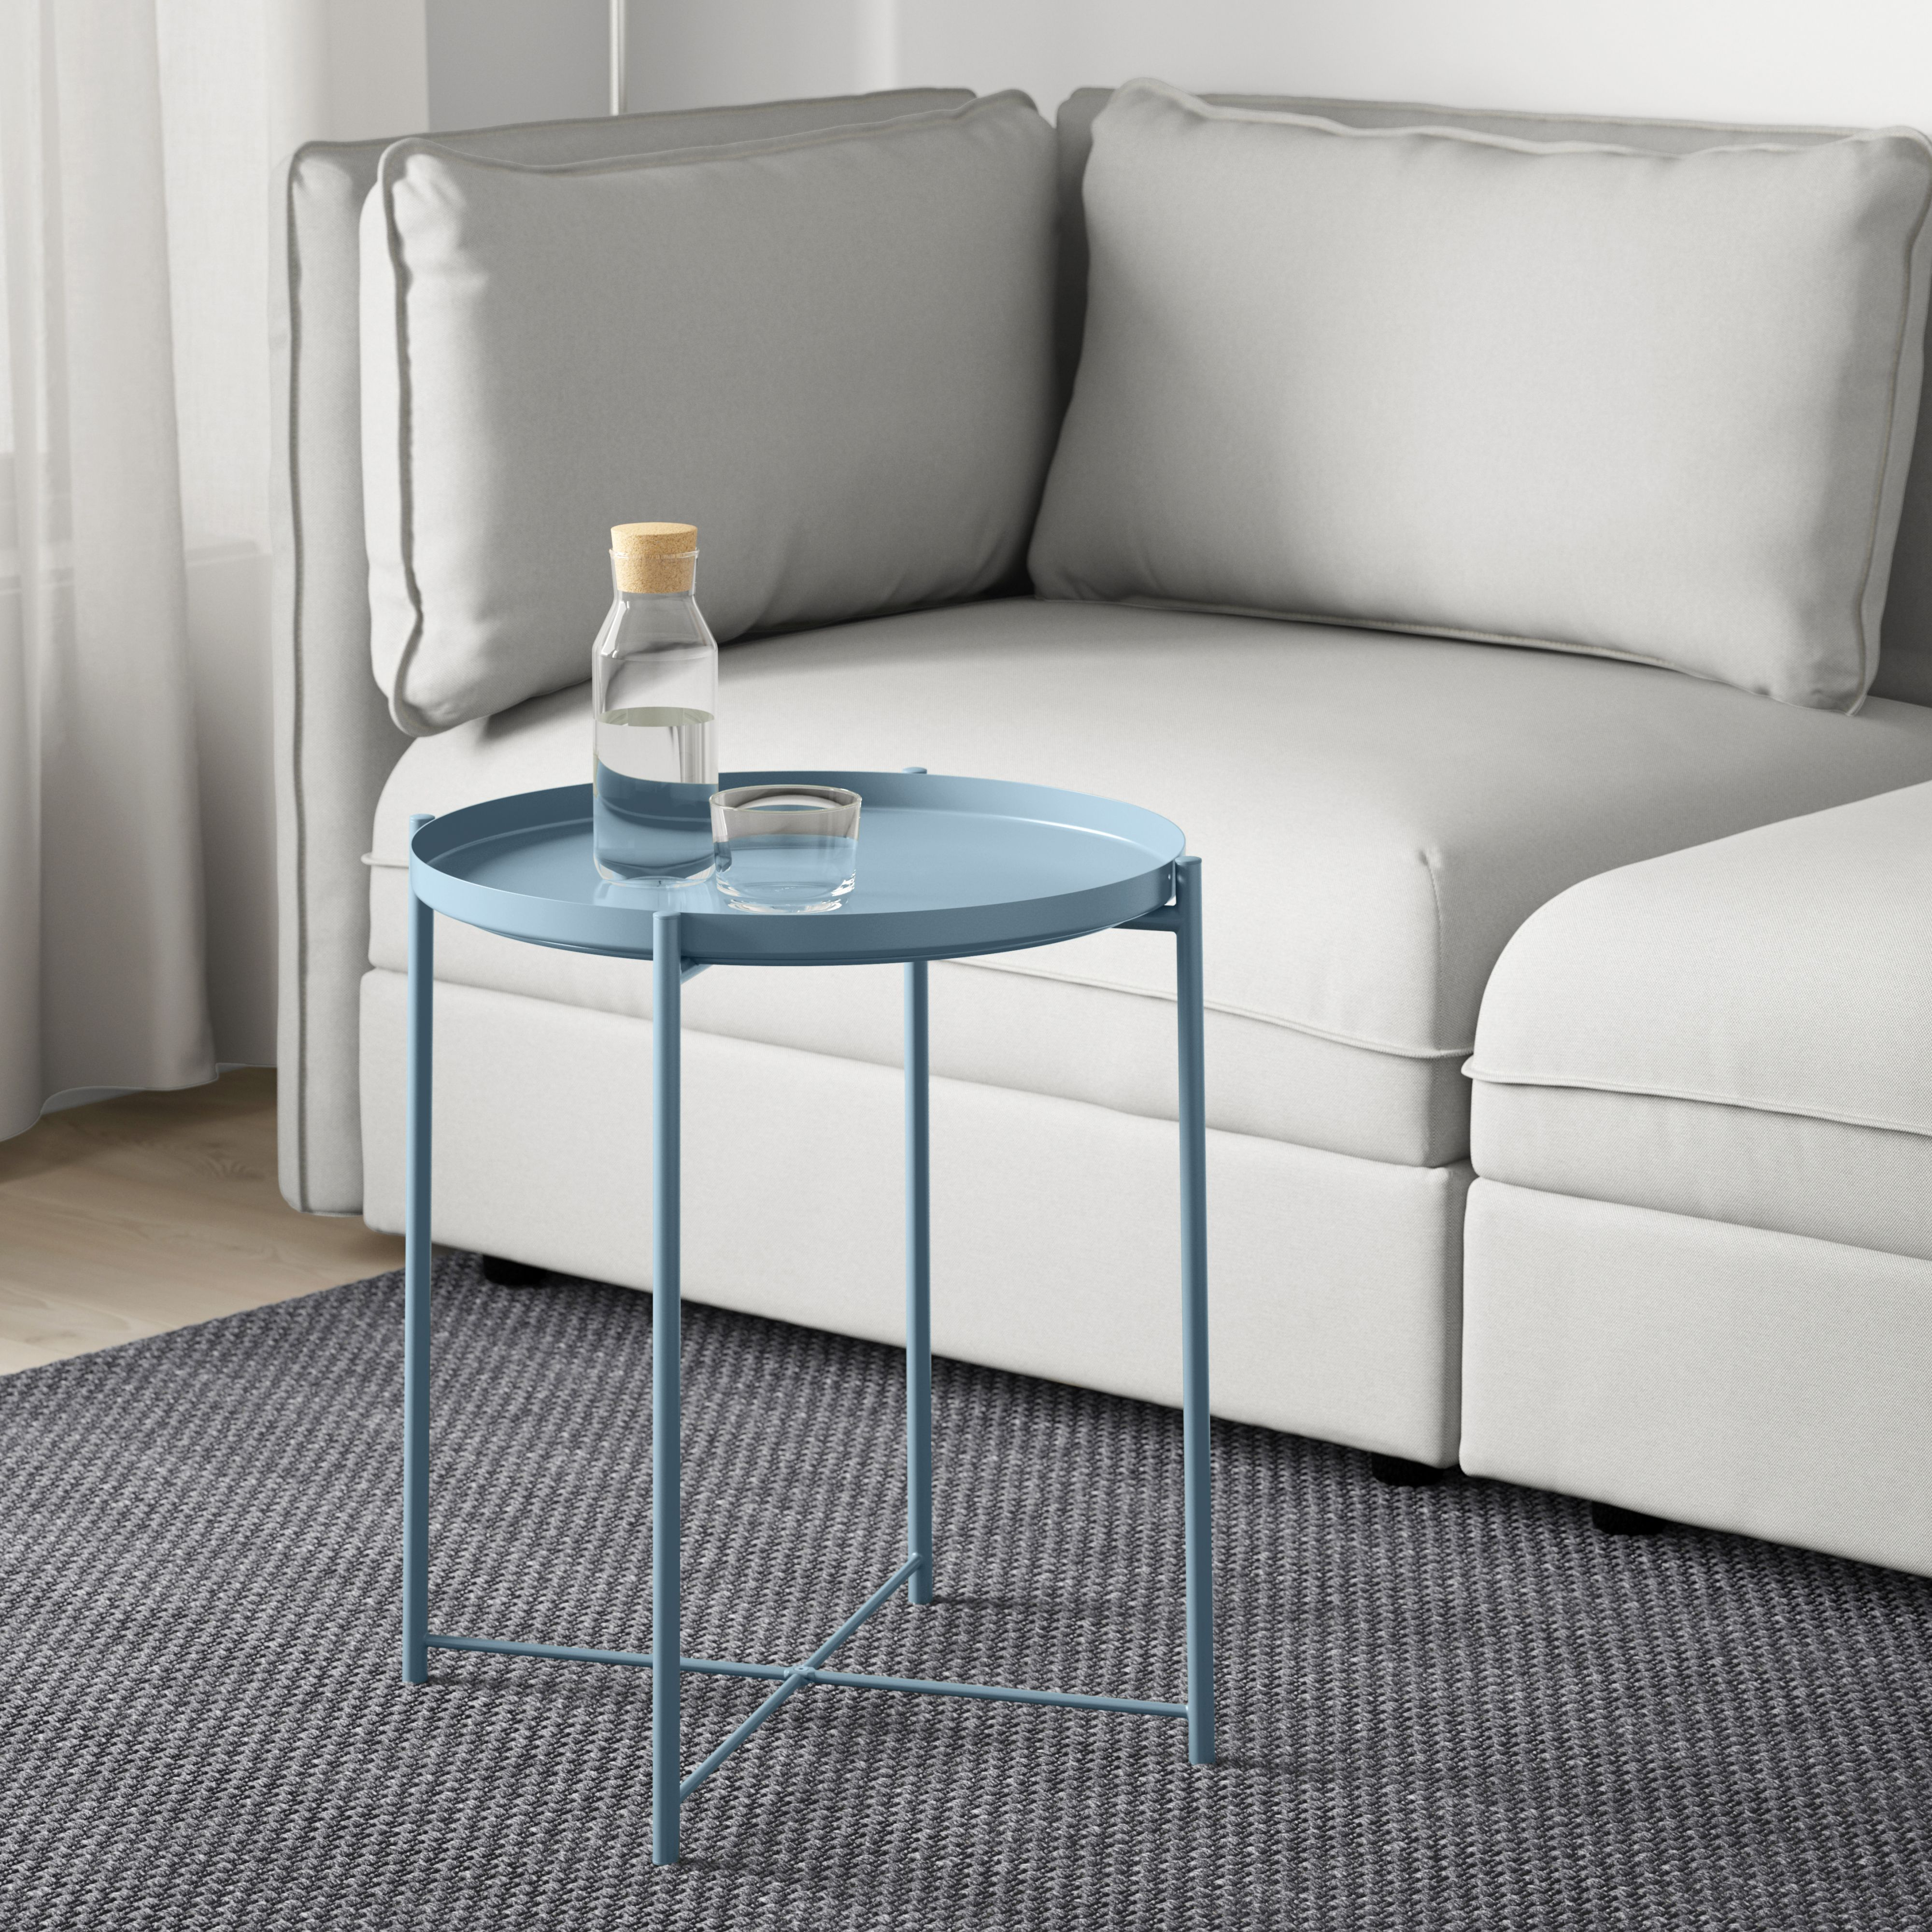 Gladom Tray Table Blue Debbies Space For Dreams Space Ikea